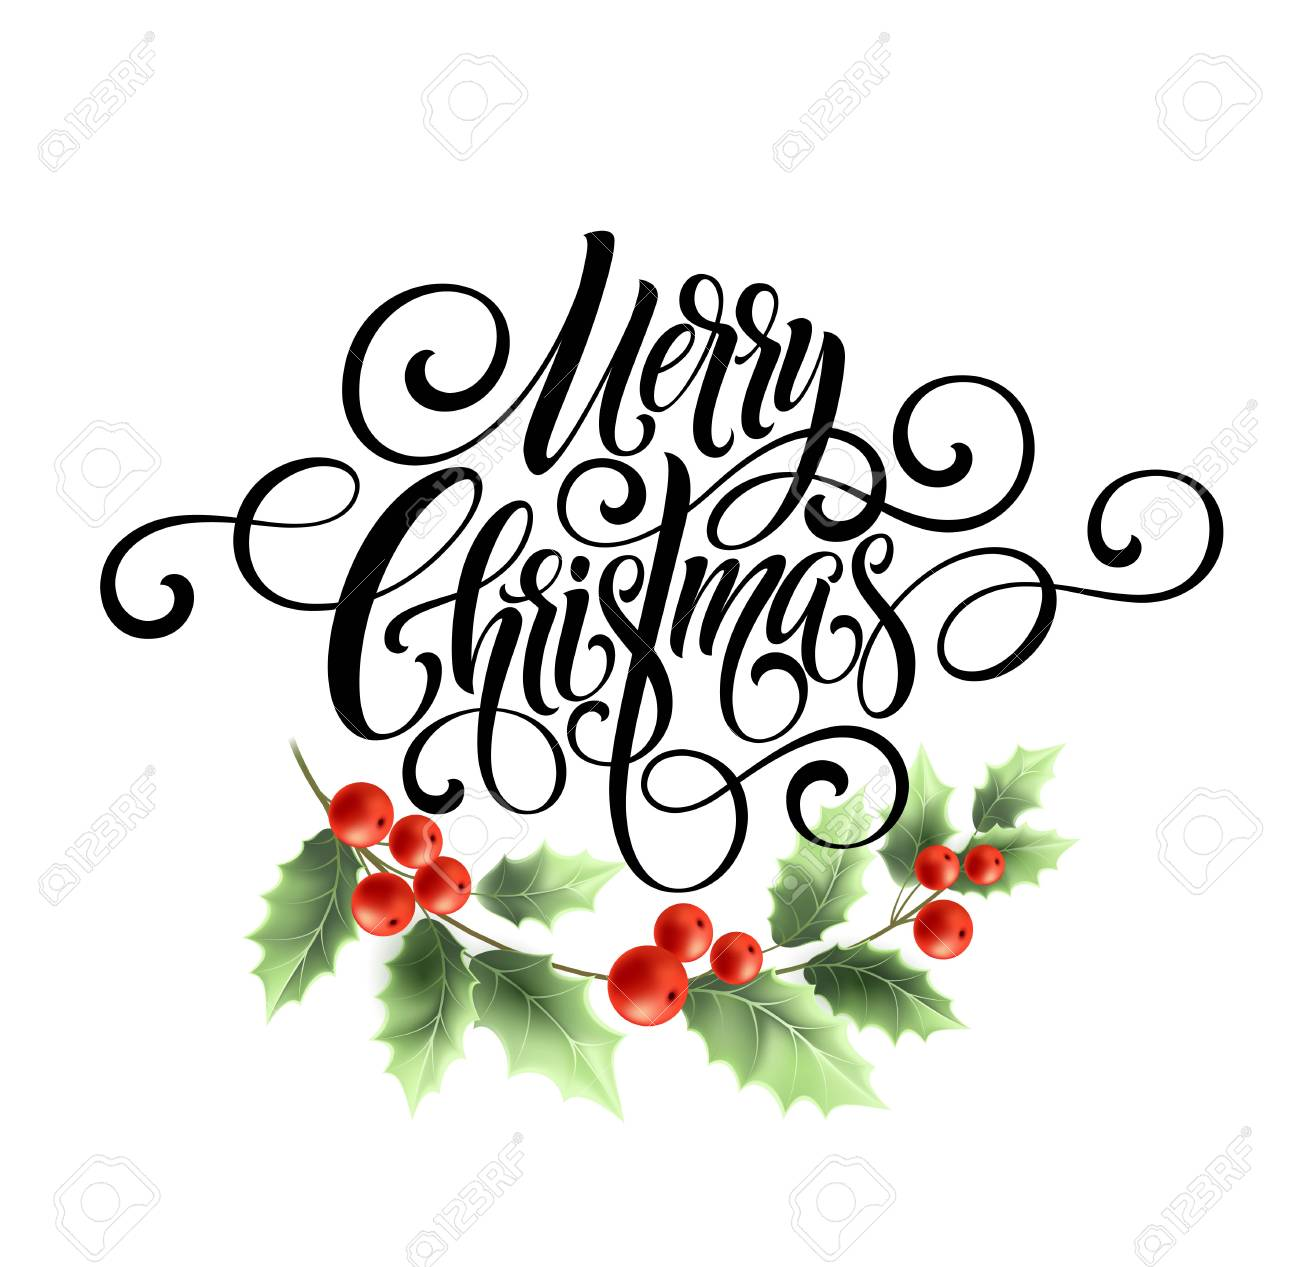 Free Merry Christmas Images.Merry Christmas Handwriting Script Lettering Christmas Greeting